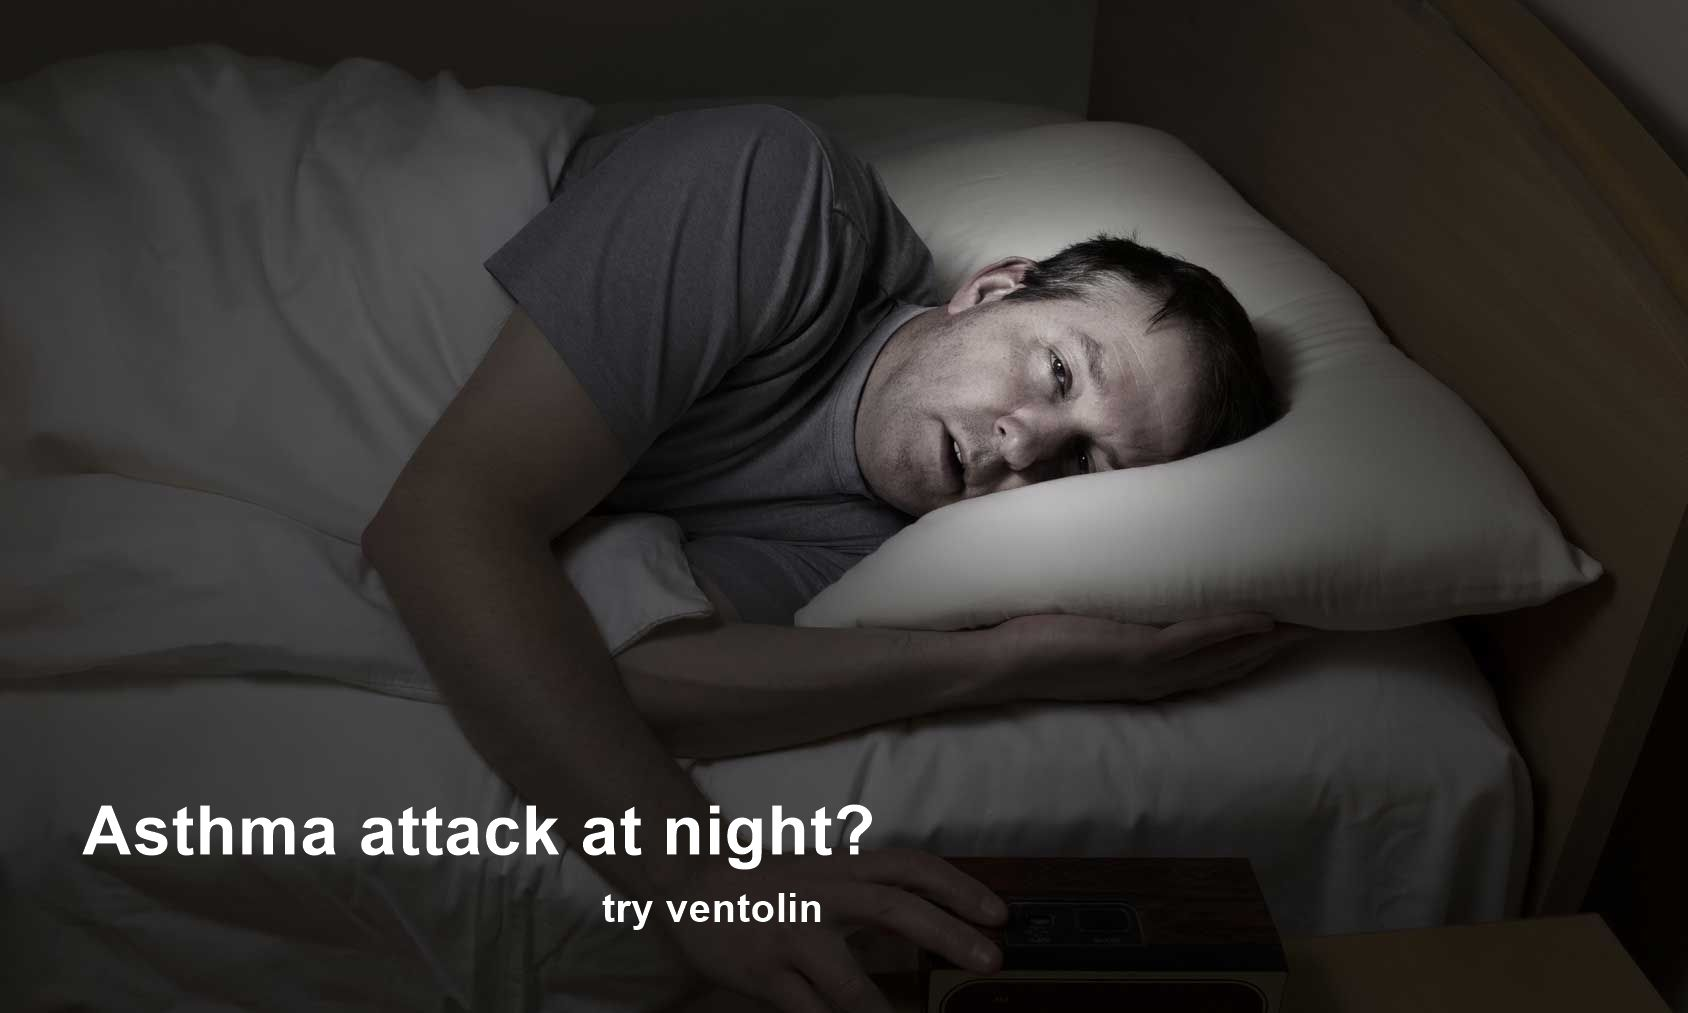 Nocturnal asthma, with symptoms like chest tightness